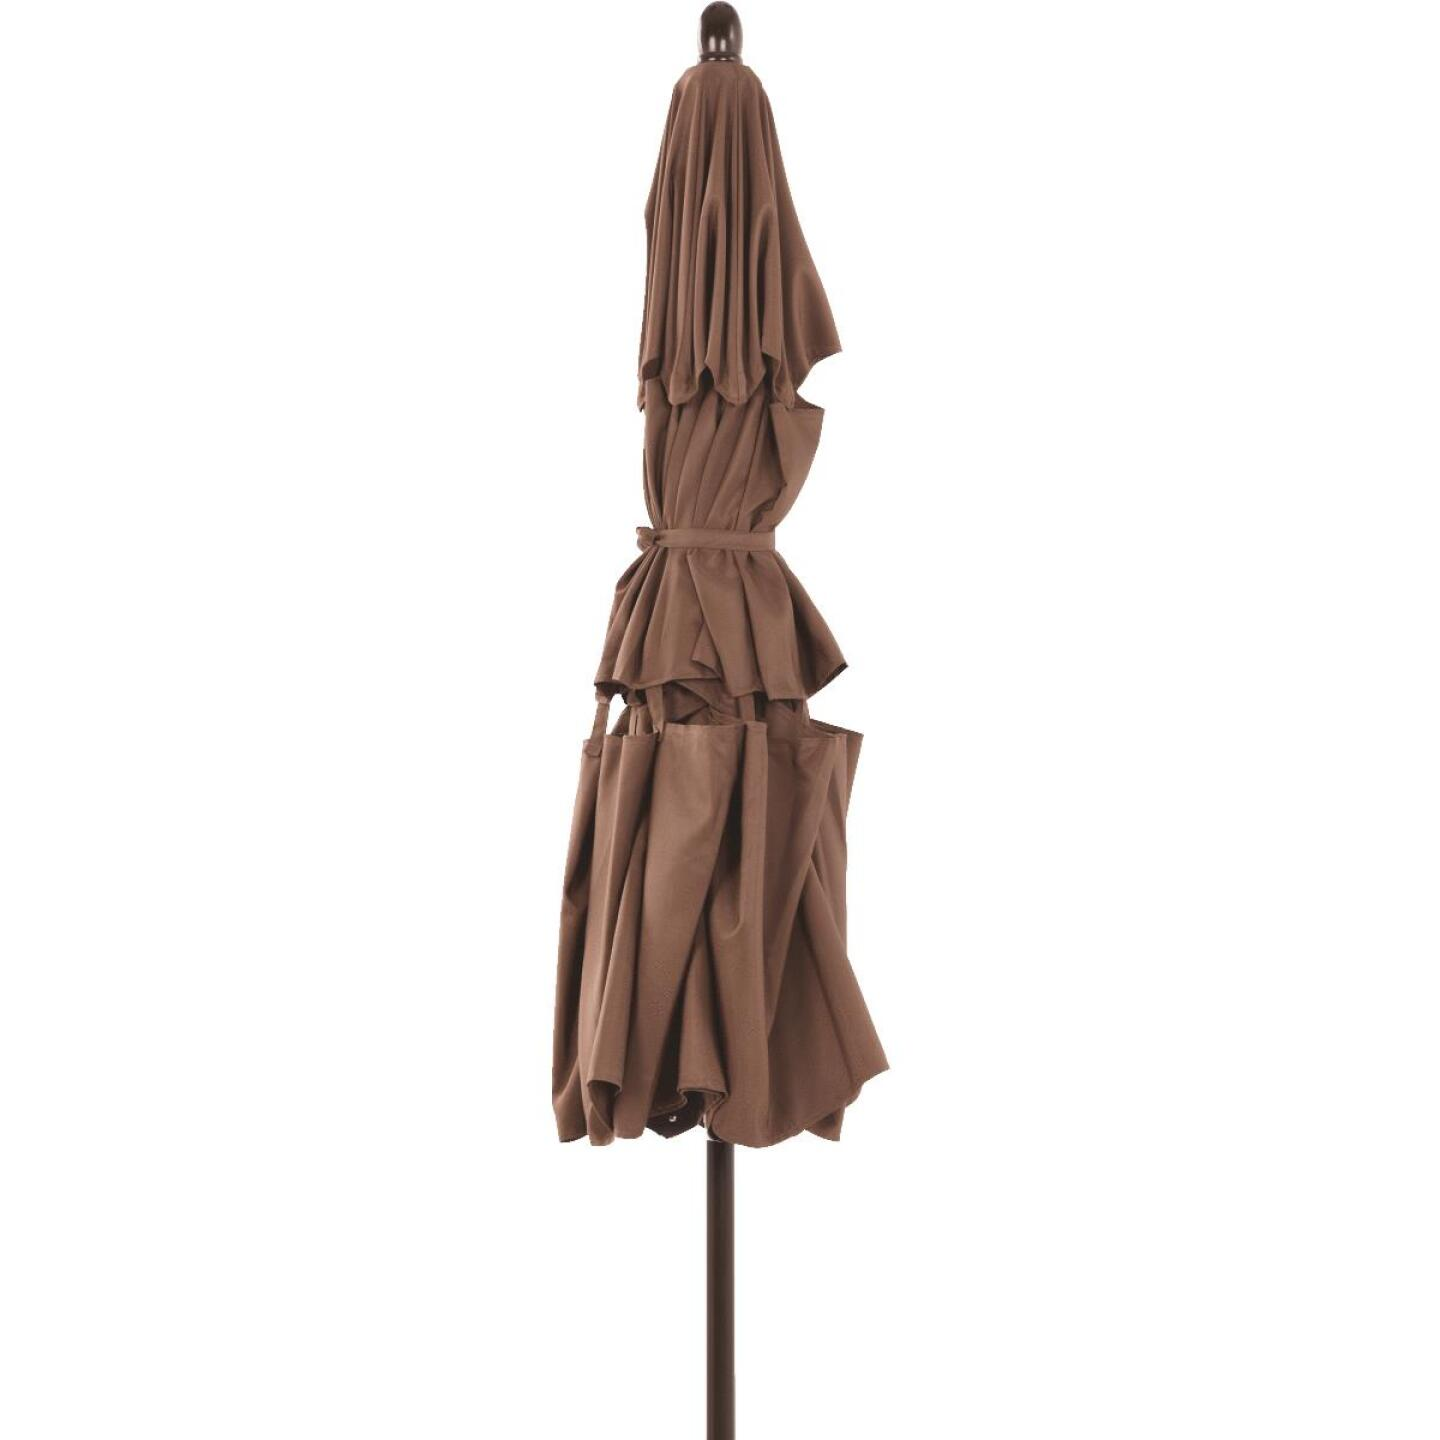 Outdoor Expressions 9 Ft. 3-Tier Tilt/Pulley Brown Patio Umbrella Image 7